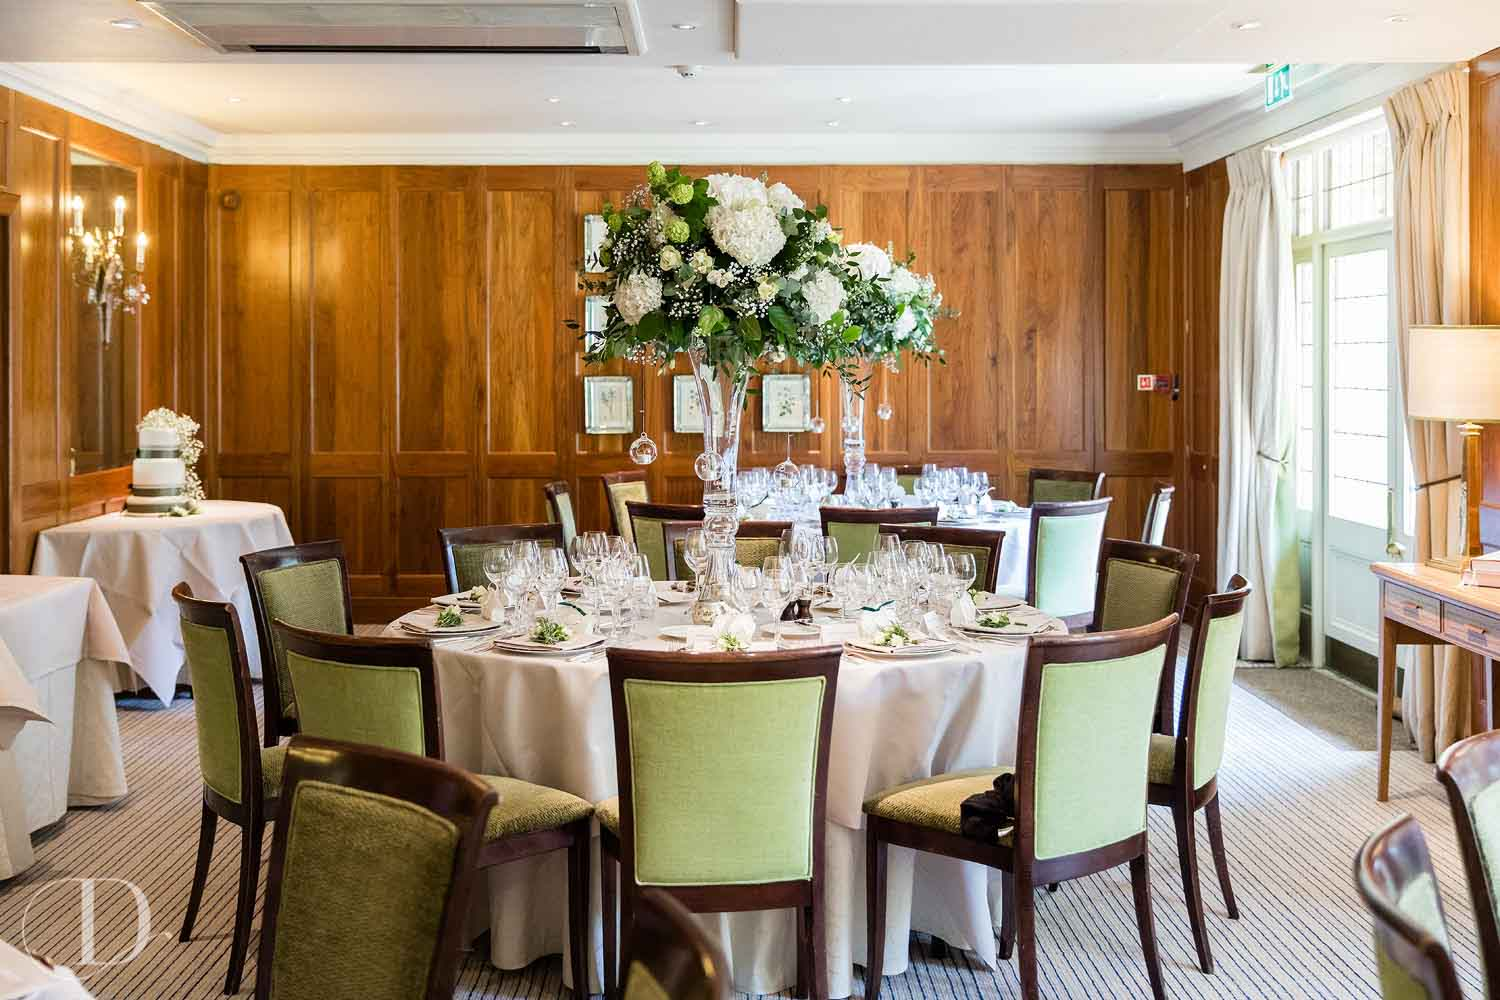 Le Manoir aux Quat'Saisons wedding set up